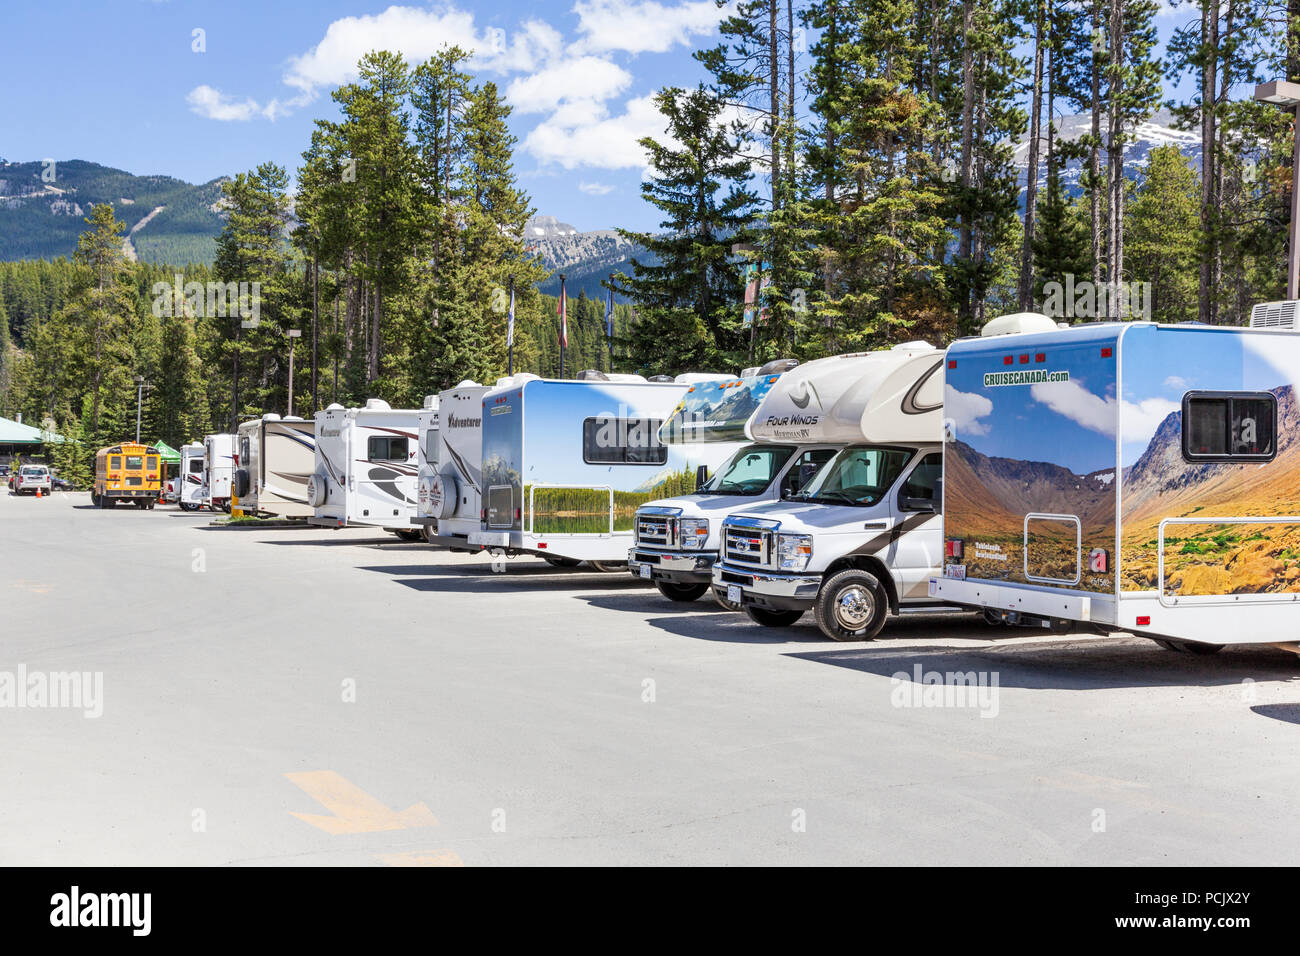 Motor homes in a car park in the Rocky Mountains at the town of Lake Louise, Alberta, Canada - Stock Image